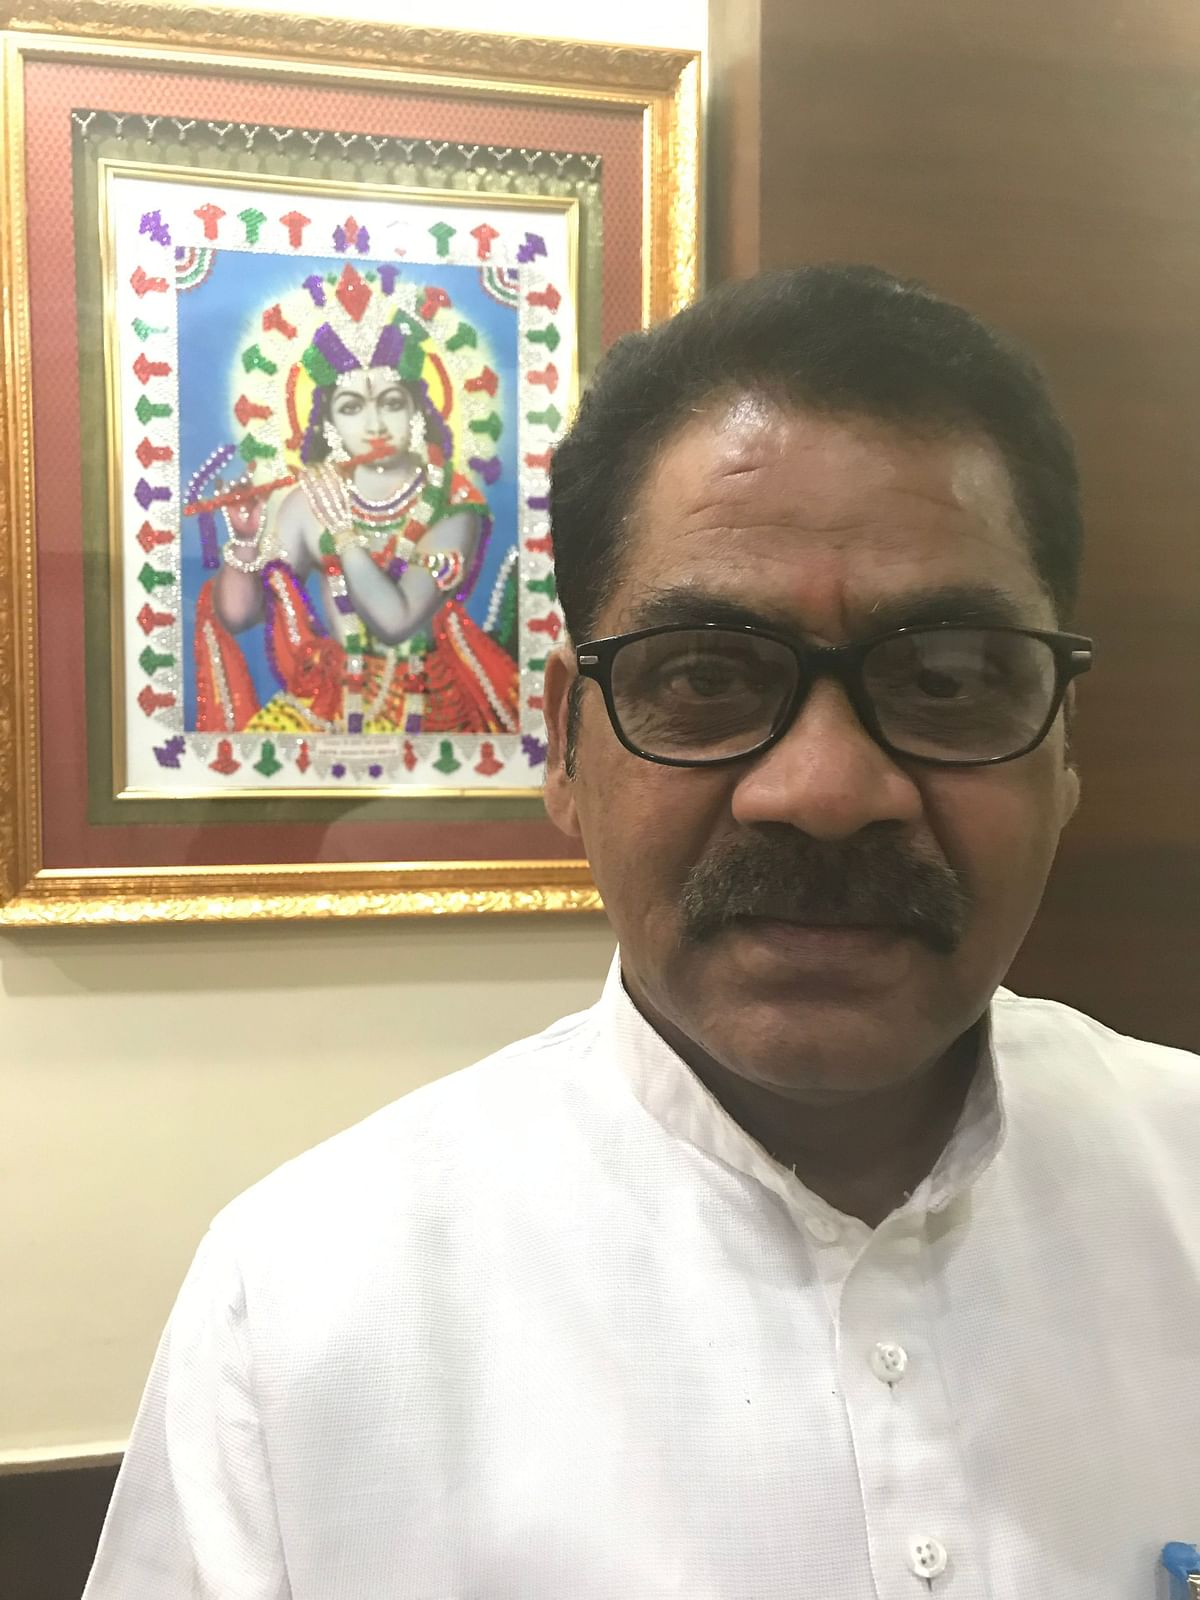 Prem Mishra, businessman and president of Varanasi, 'Udyog Vyapar Samiti' feels that there is more that meets the eye about Nitin Gadkari, and his recent remarks on him not being in the race for Prime Minister.